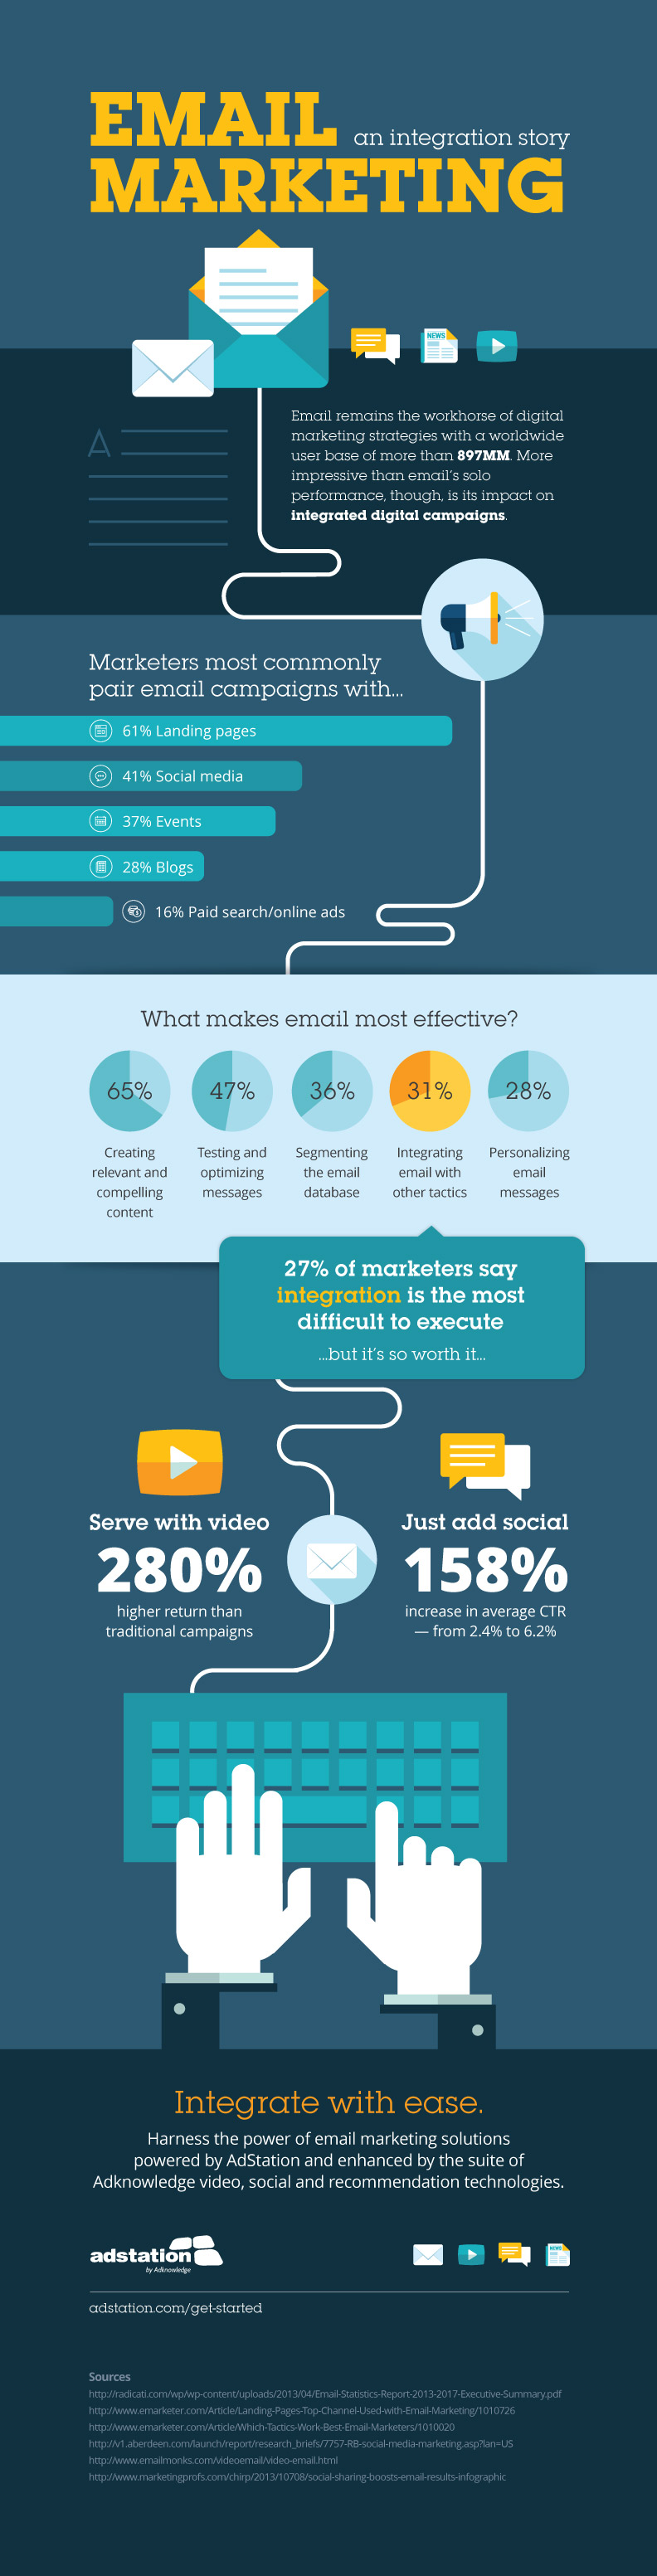 email marketing an integration story